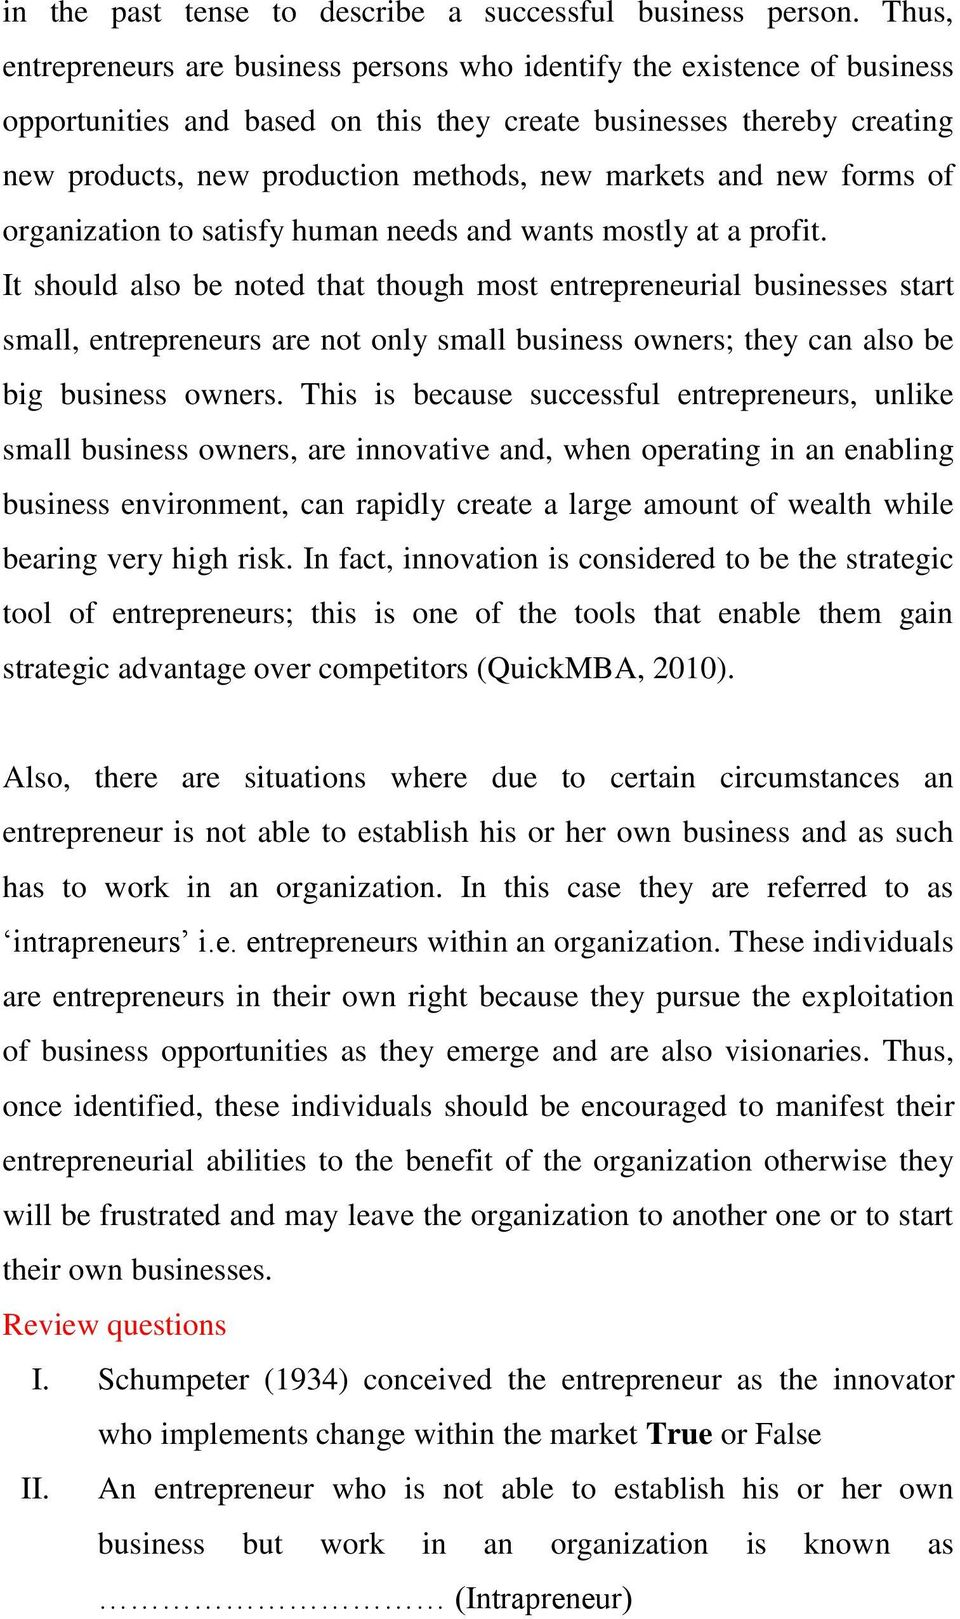 MODULE ONE THEORY AND CONCEPT OF ENTREPRENEURSHIP STUDIES